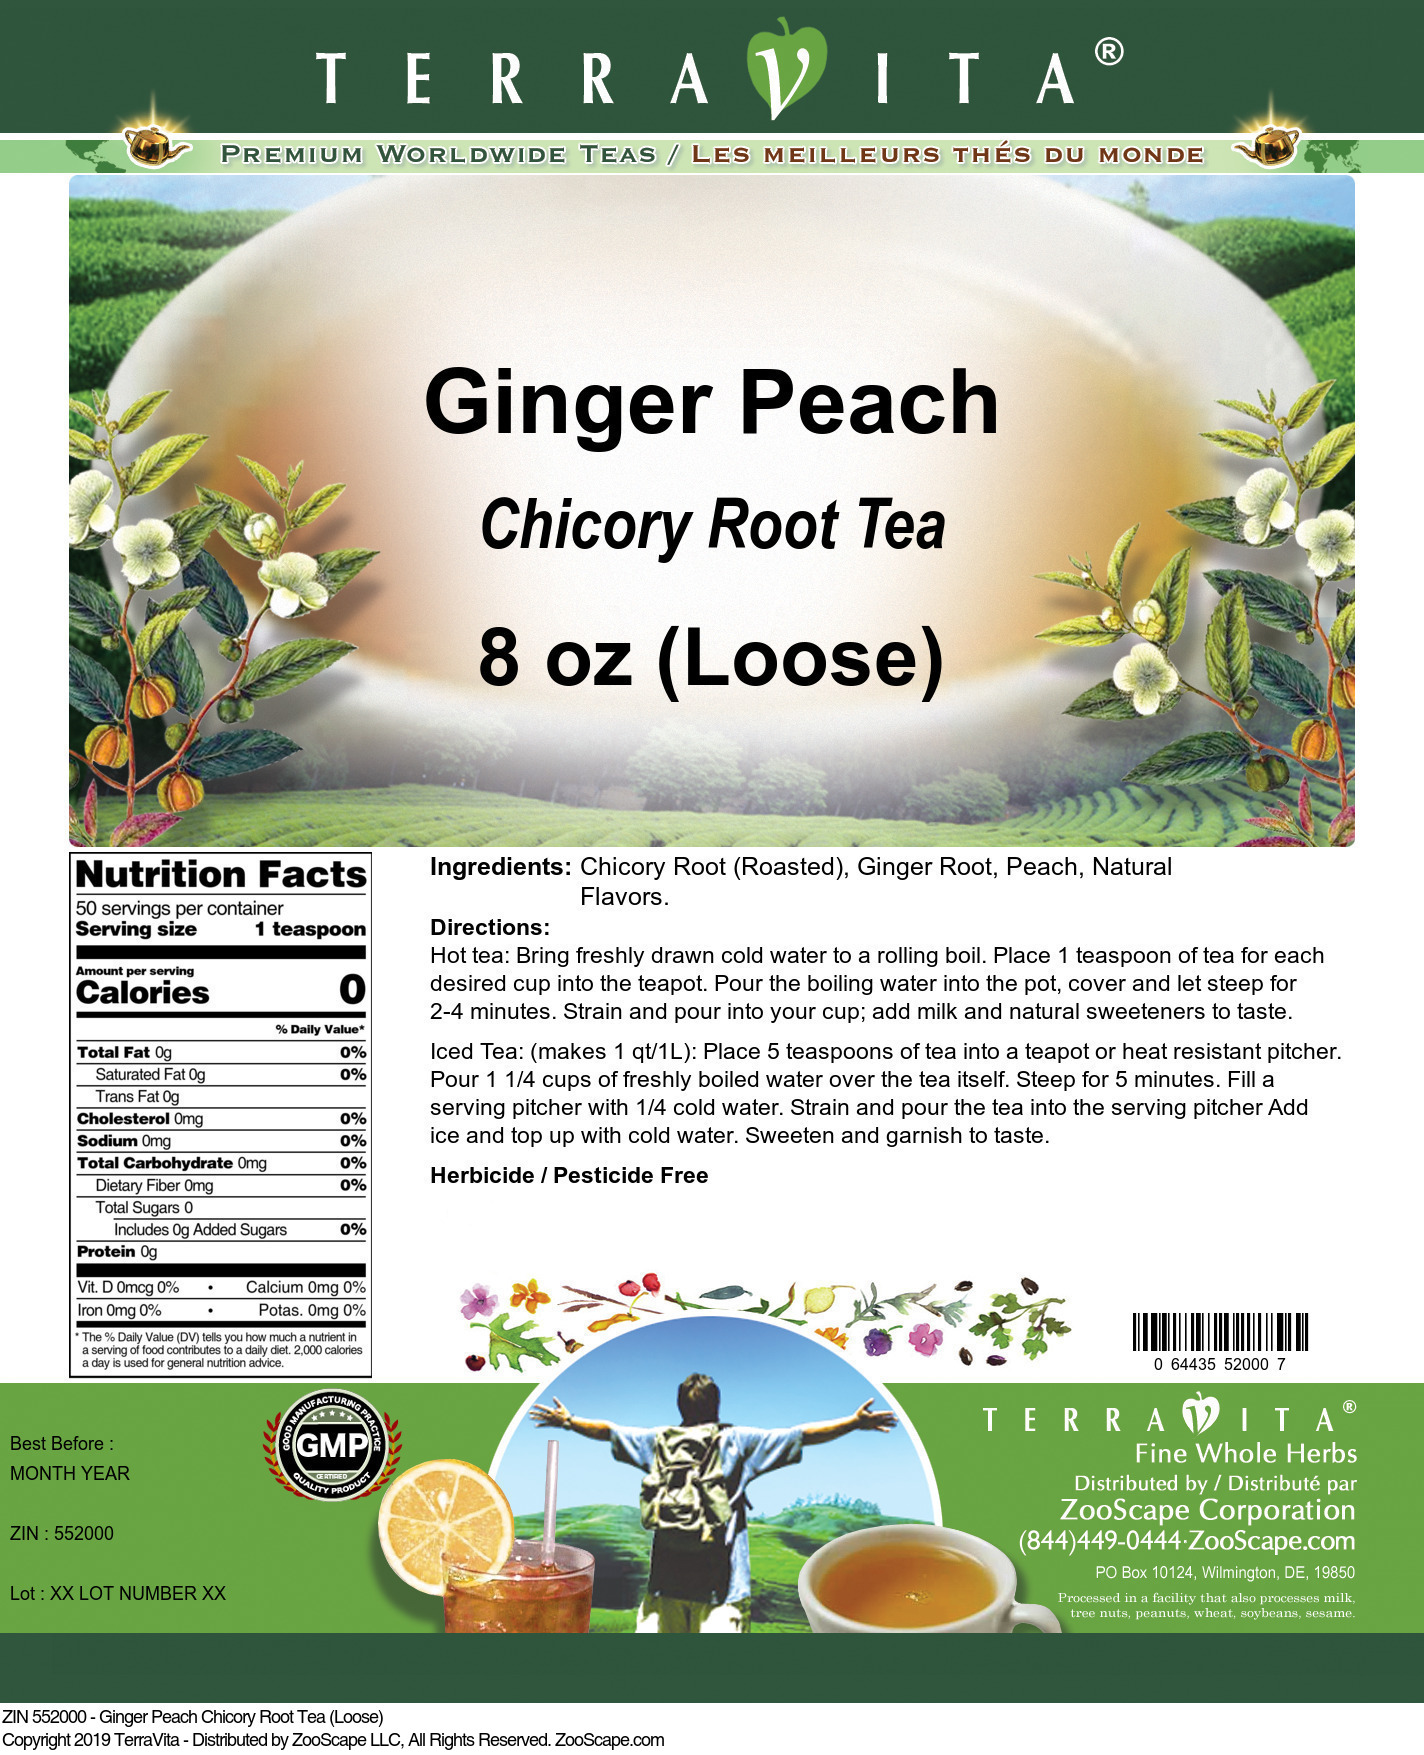 Ginger Peach Chicory Root Tea (Loose)